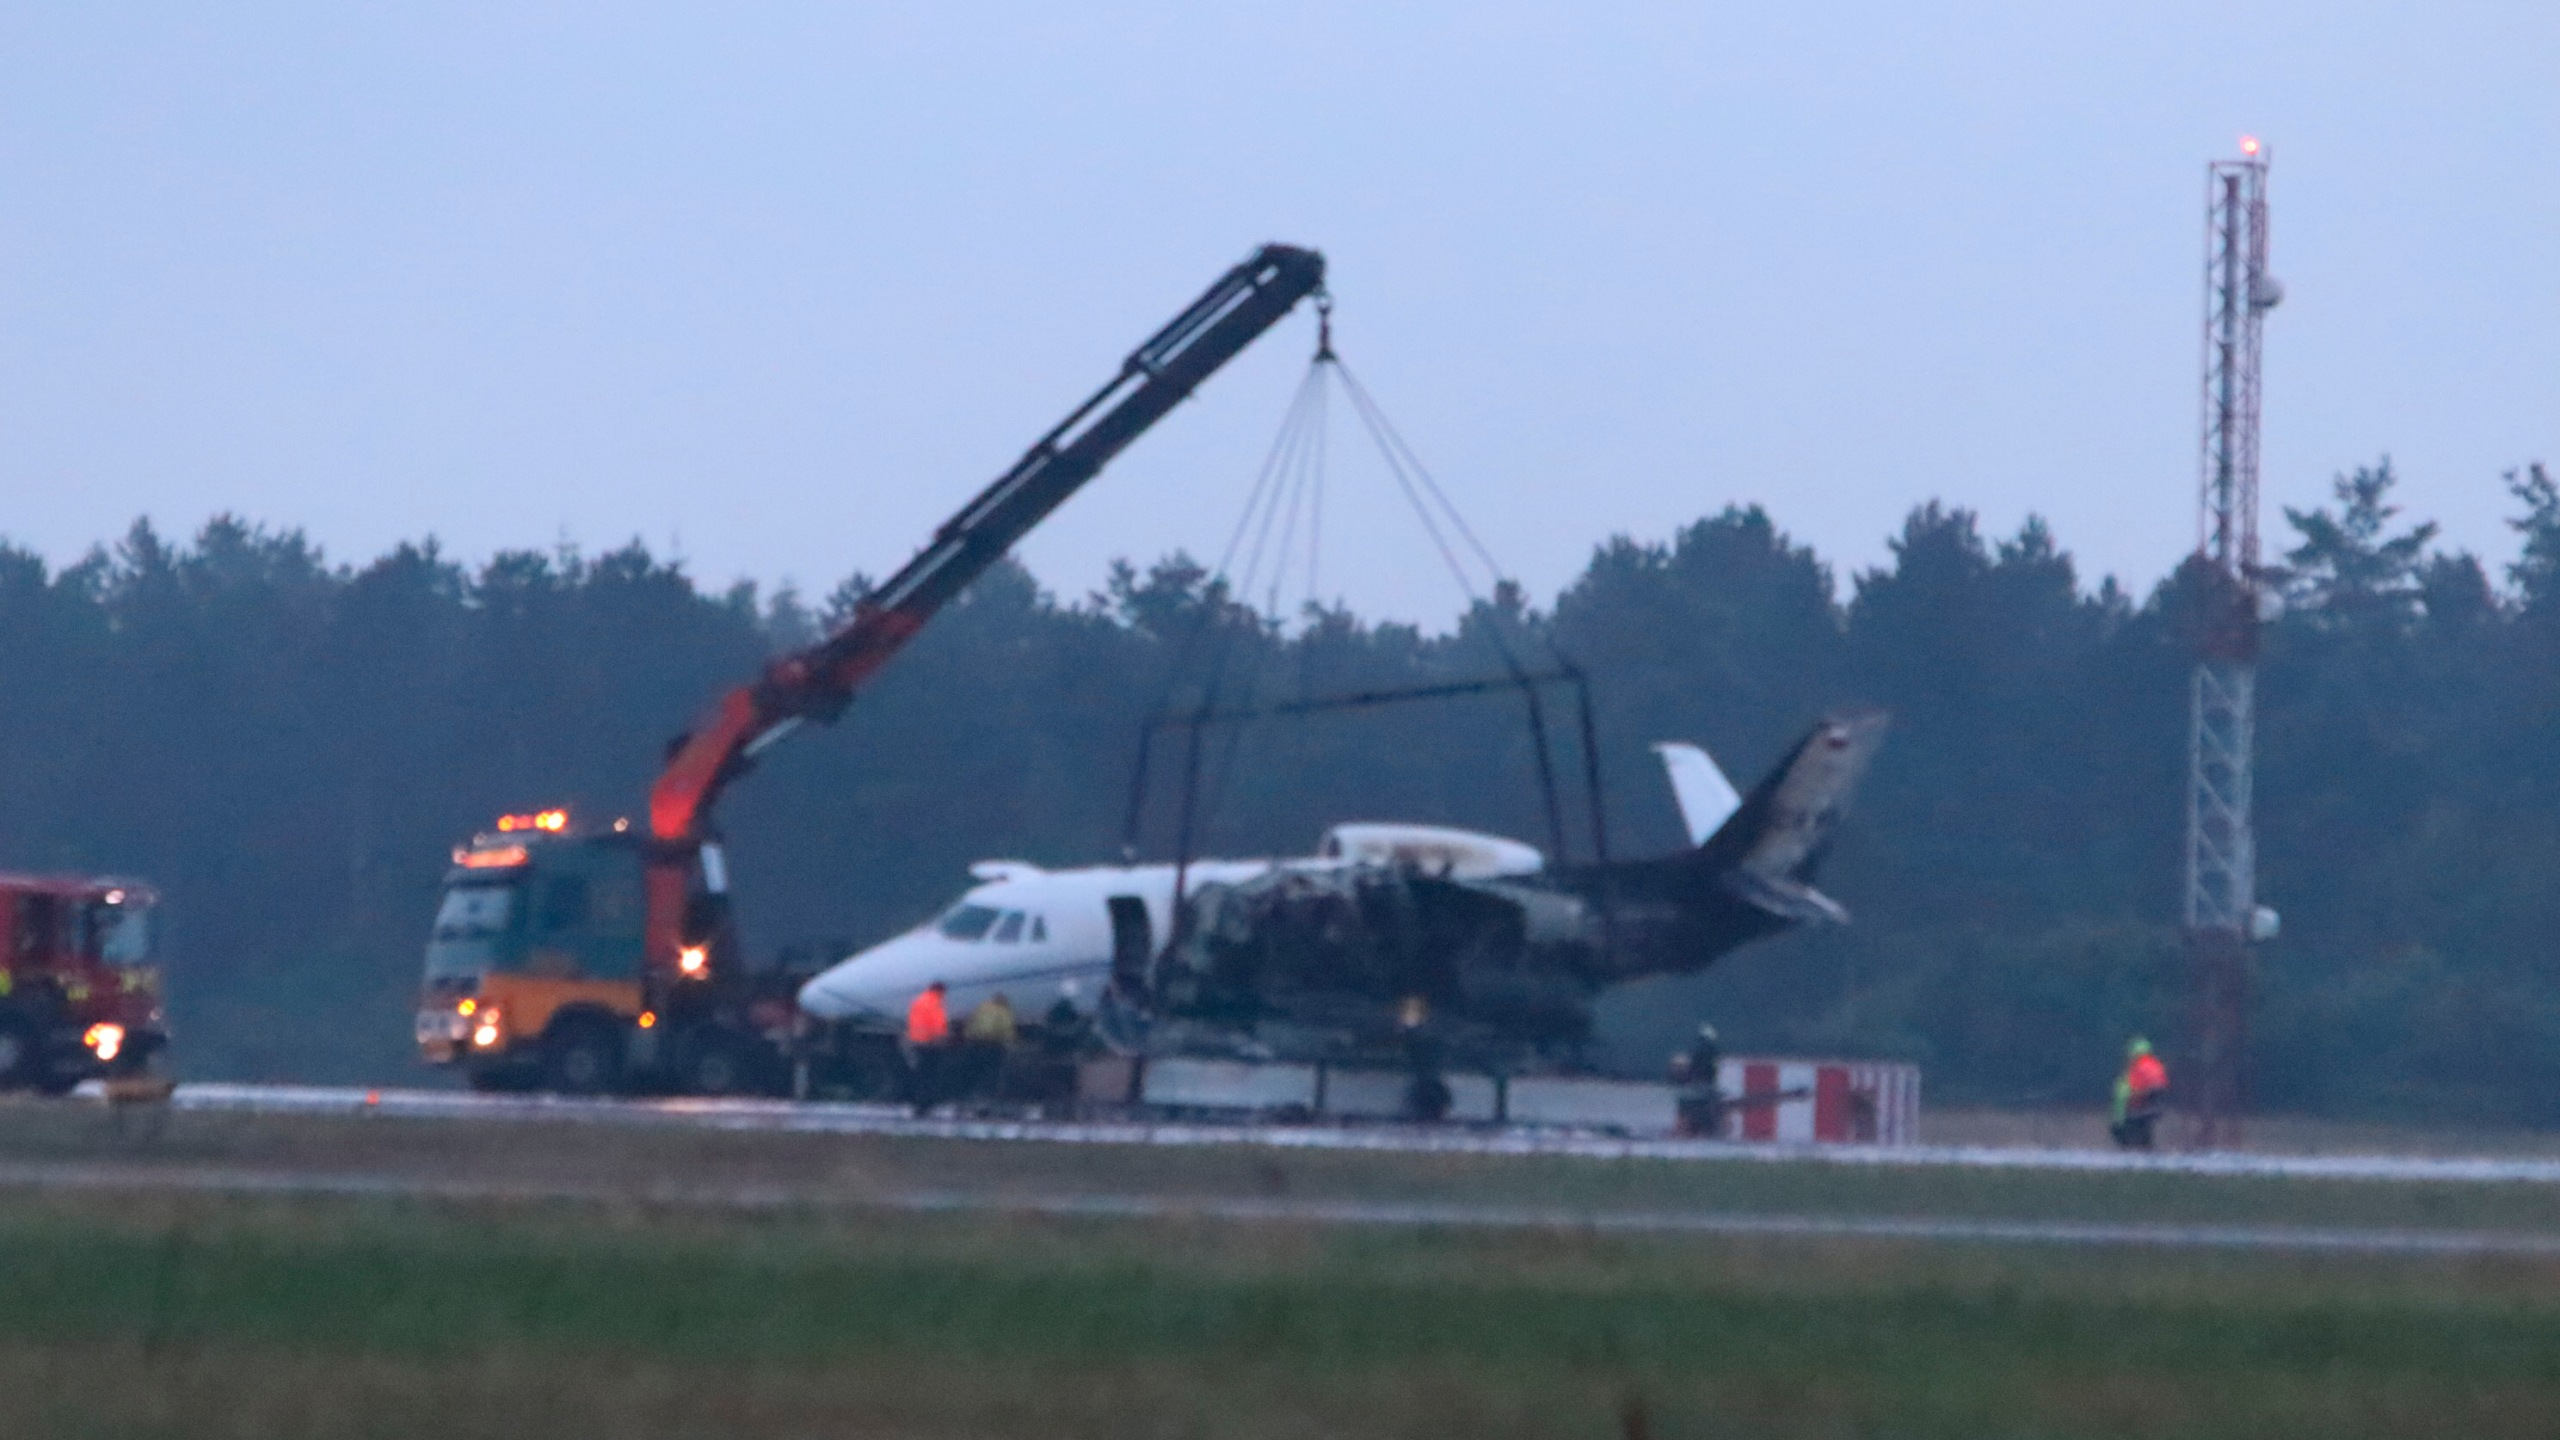 Emergency services are seen next to a Cessna 560XL that caught fire upon landing at Aarhus Airport in Tirstrup in the early hours of Aug. 6, 2019. (Credit: OEXENHOLT FOTO/AFP/Getty Images)